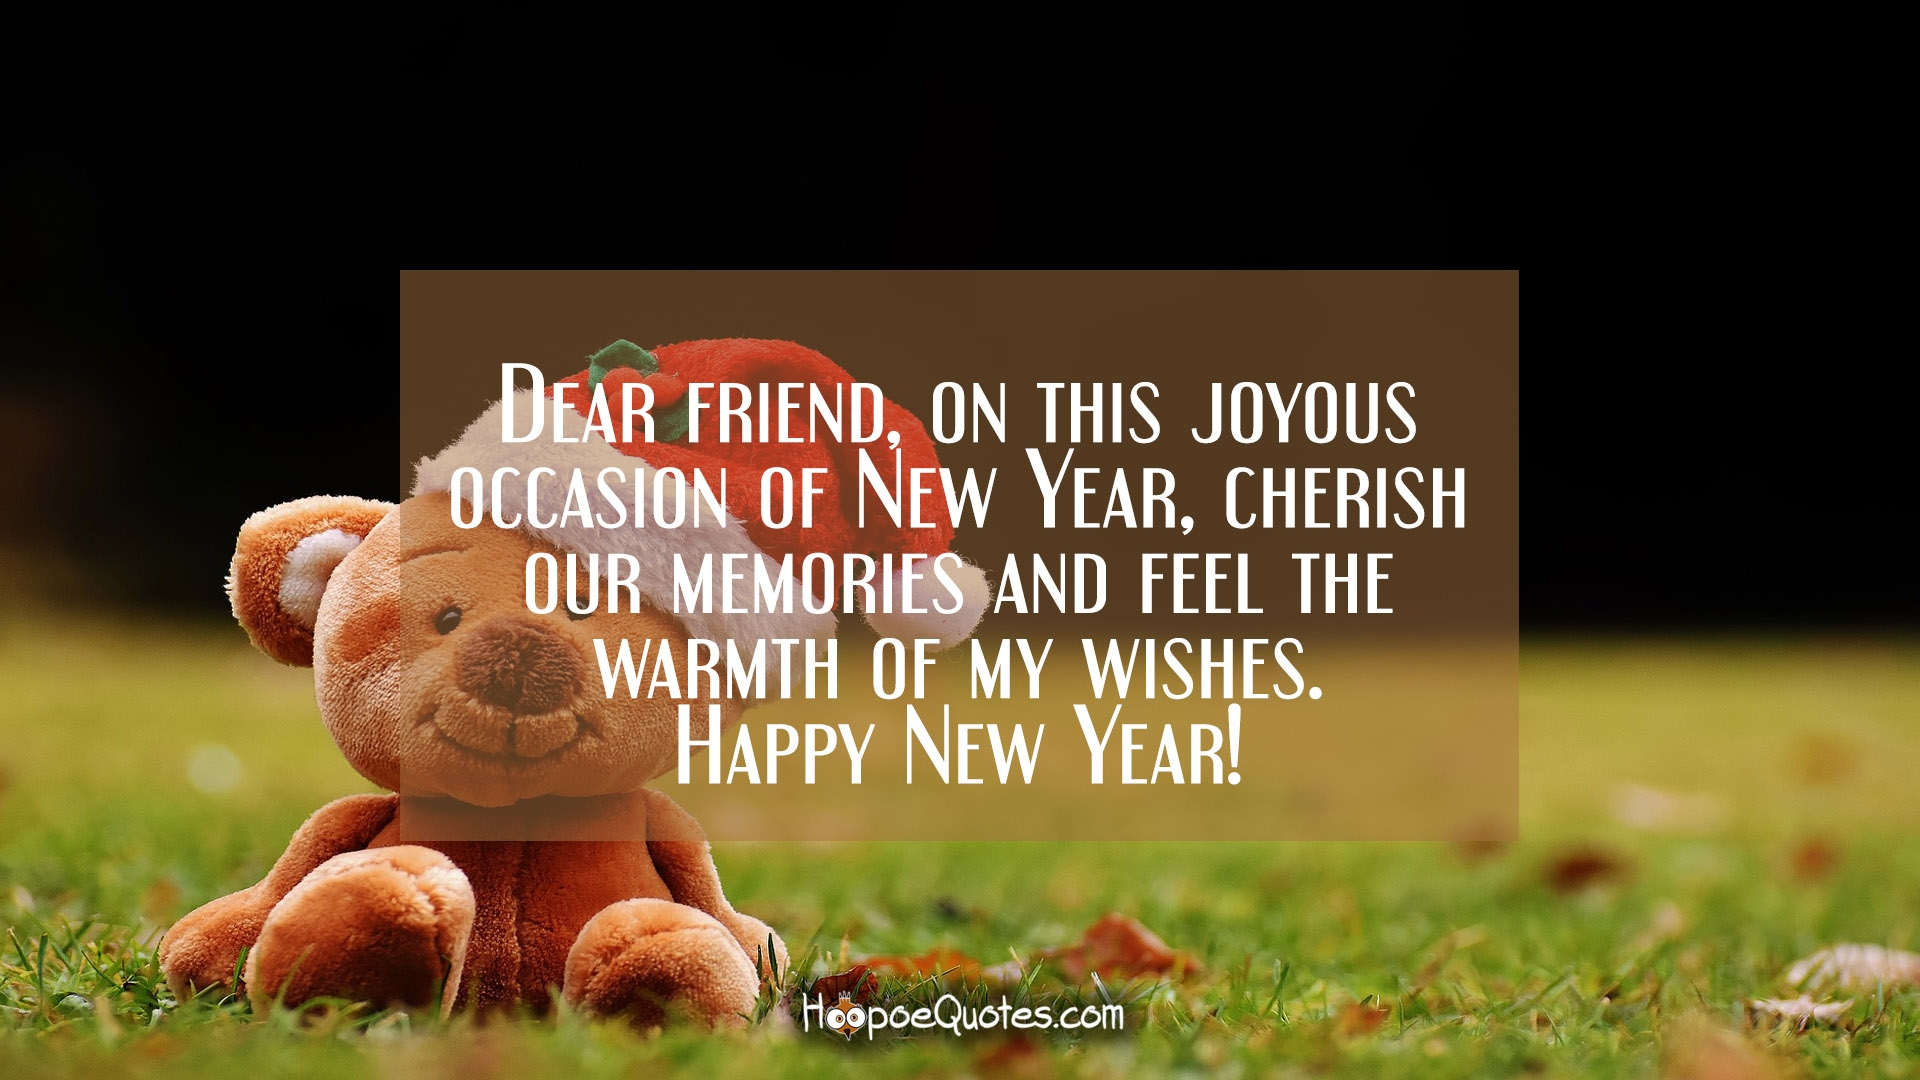 Dear friend, on this joyous occasion of New Year, cherish our ...